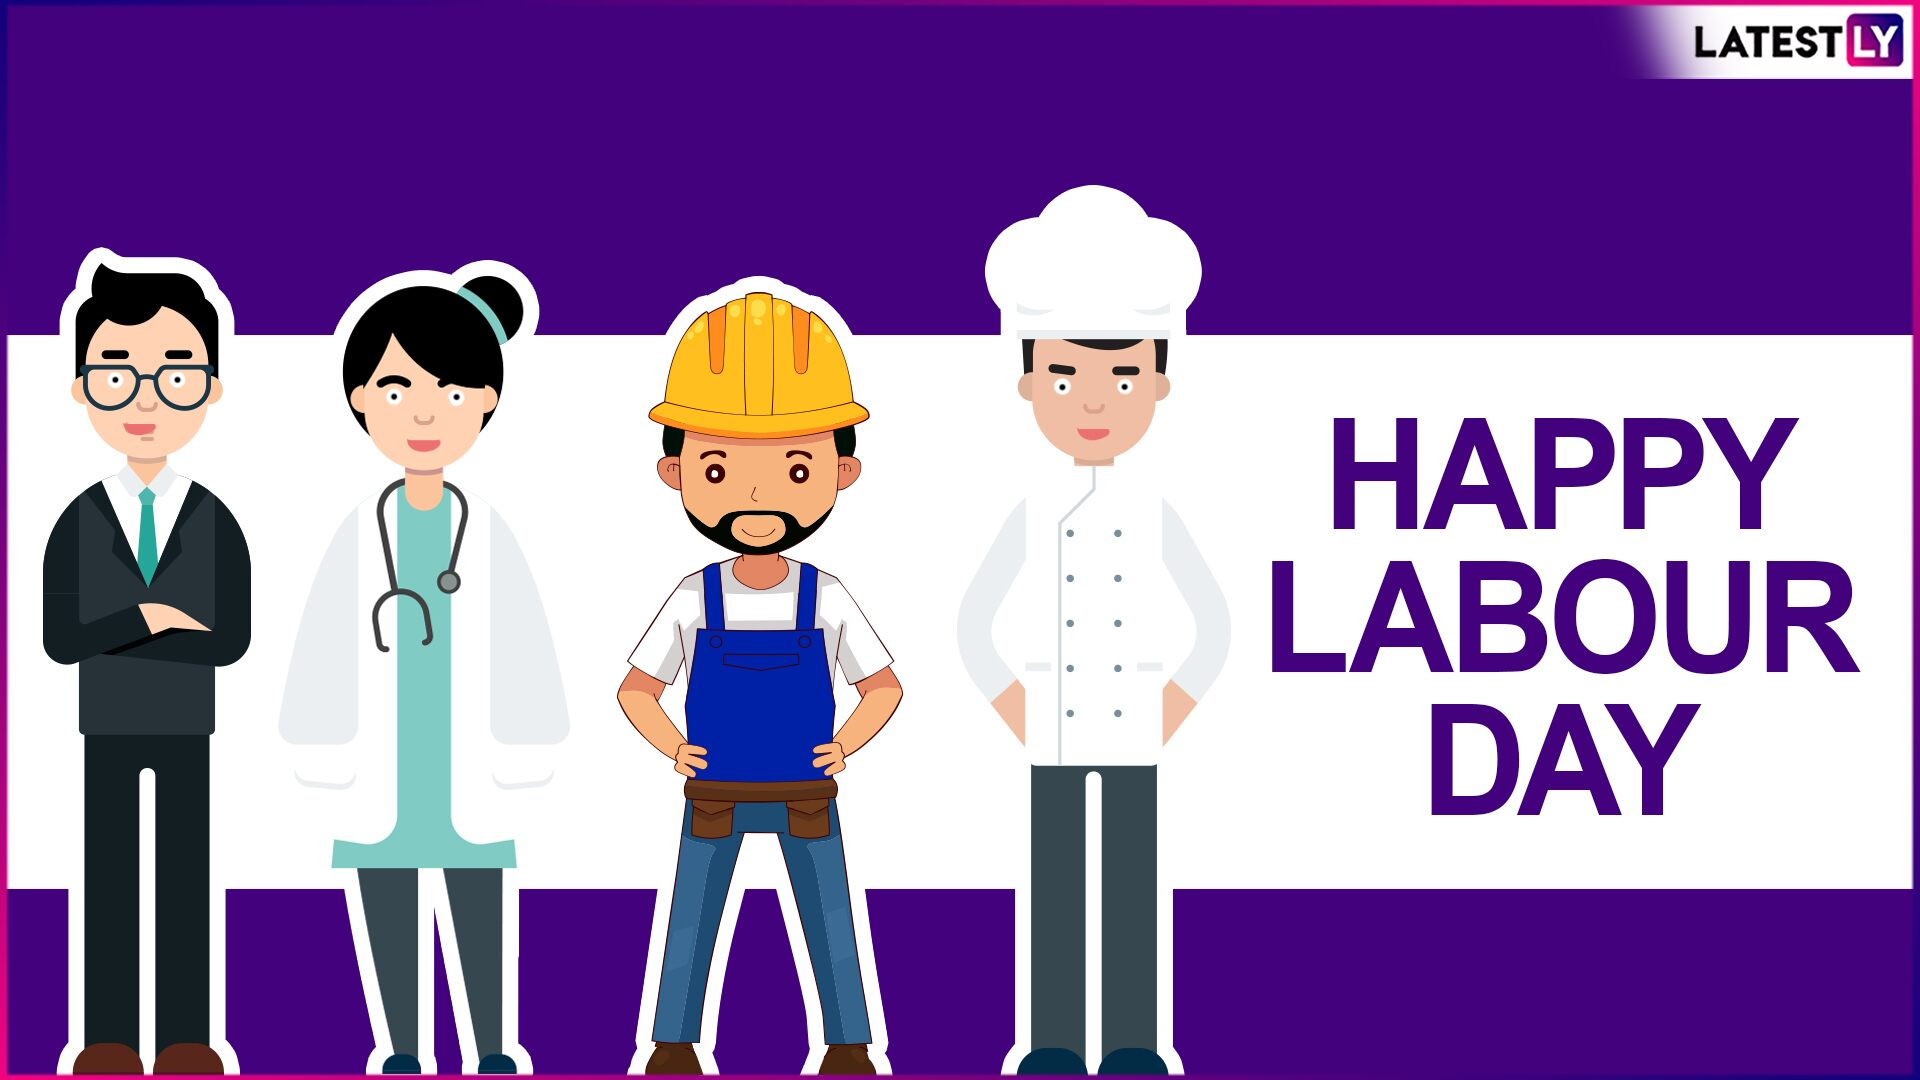 Labour Day Images With Quotes HD Wallpapers for Download 1920x1080